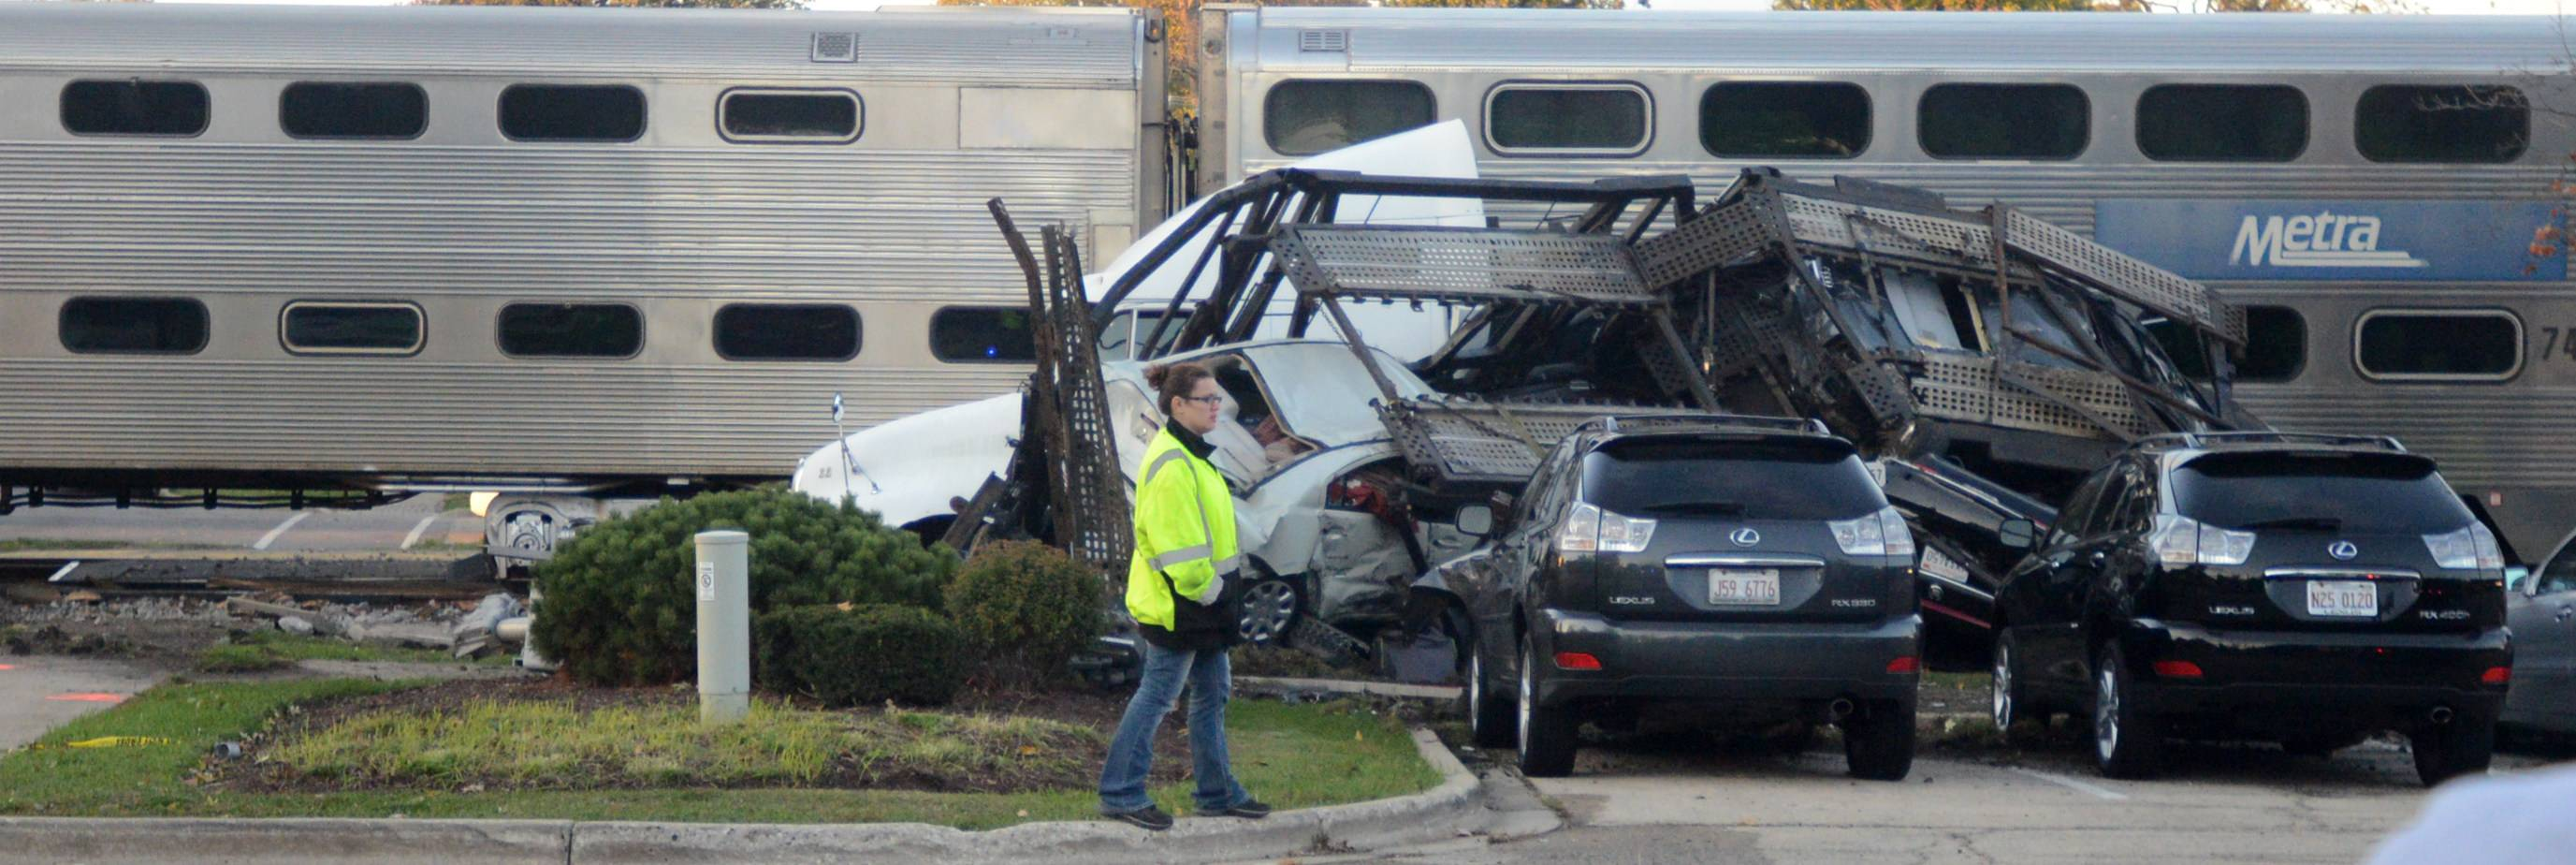 Daily Herald File Photo	Could surveillance cameras cut down on crashes involving vehicles that ignore lowered crossing gates?